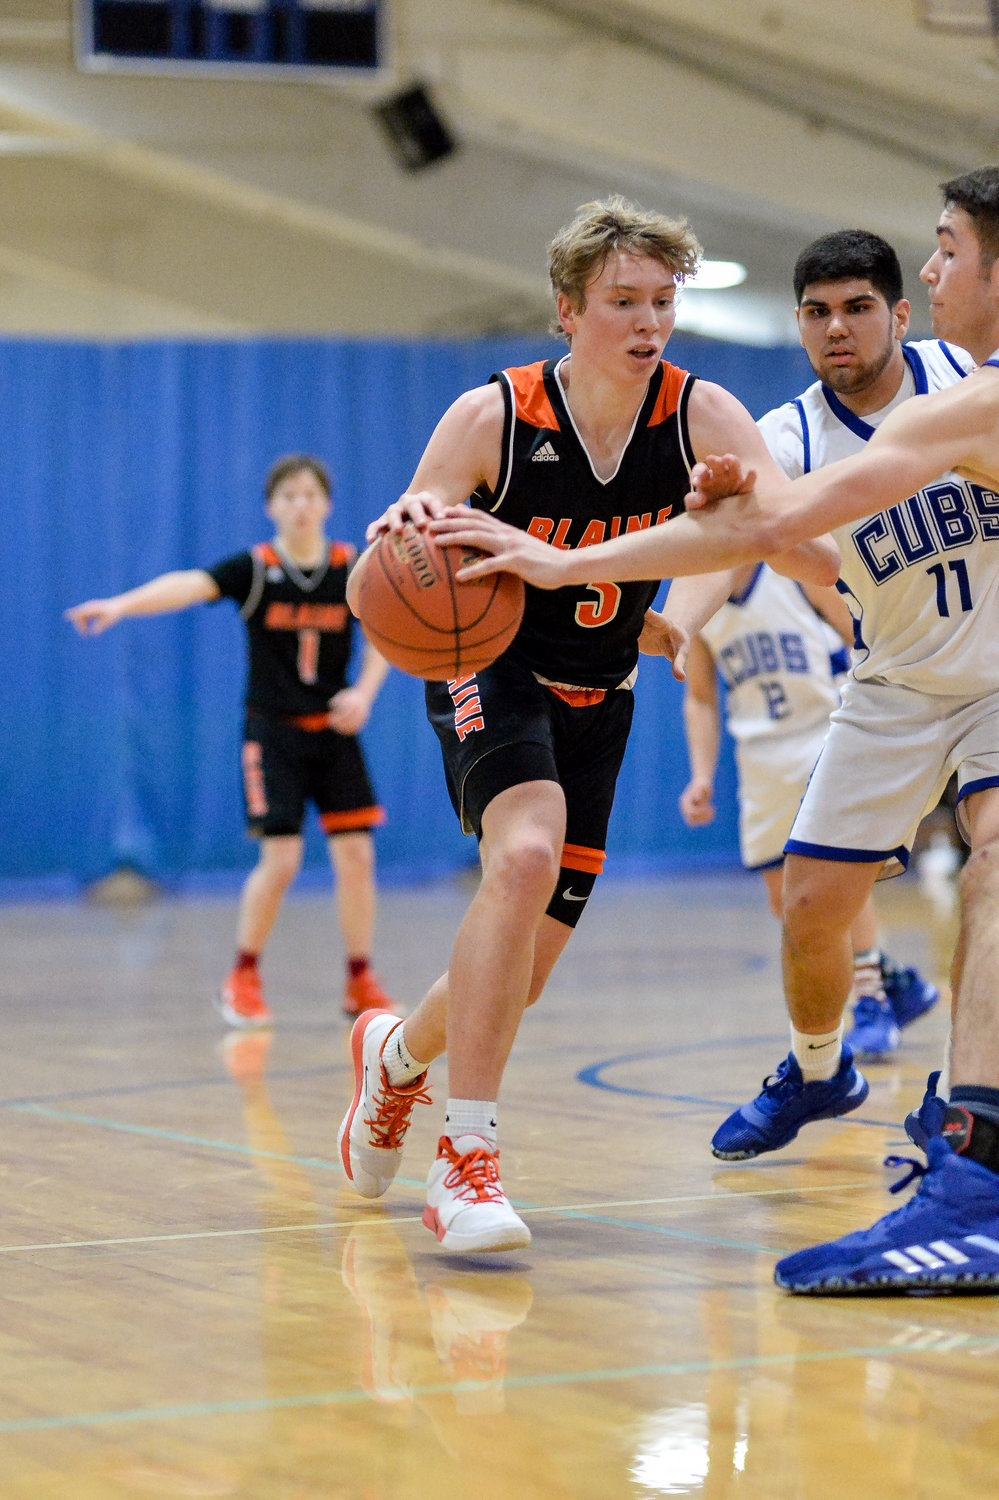 Zane Rector led Blaine's offense with 25 points against Sedro-Woolley on January 21.